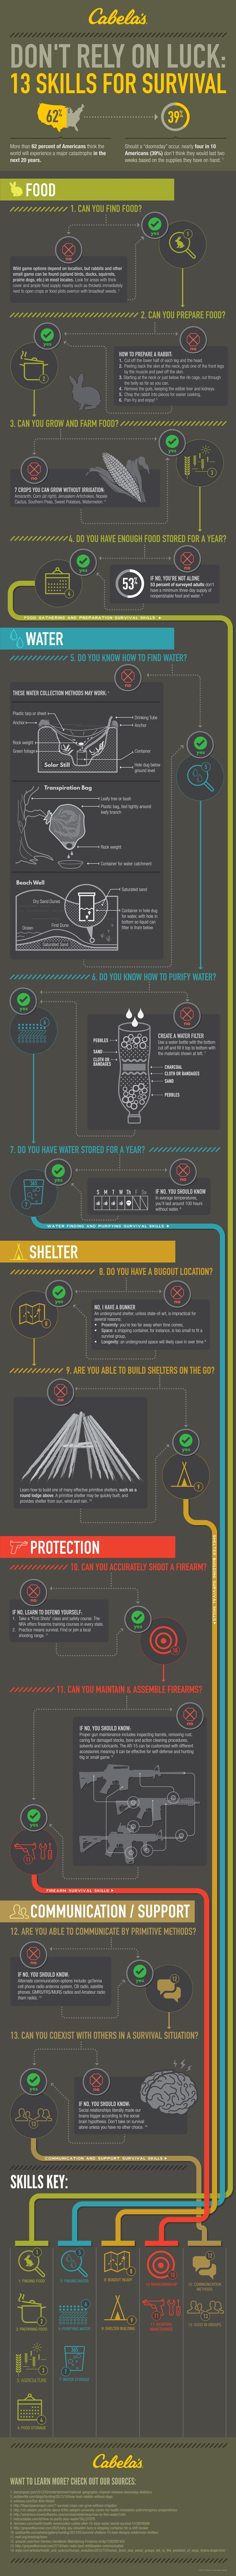 13 Survival Skills Infographic - Is Your Family Prepared?